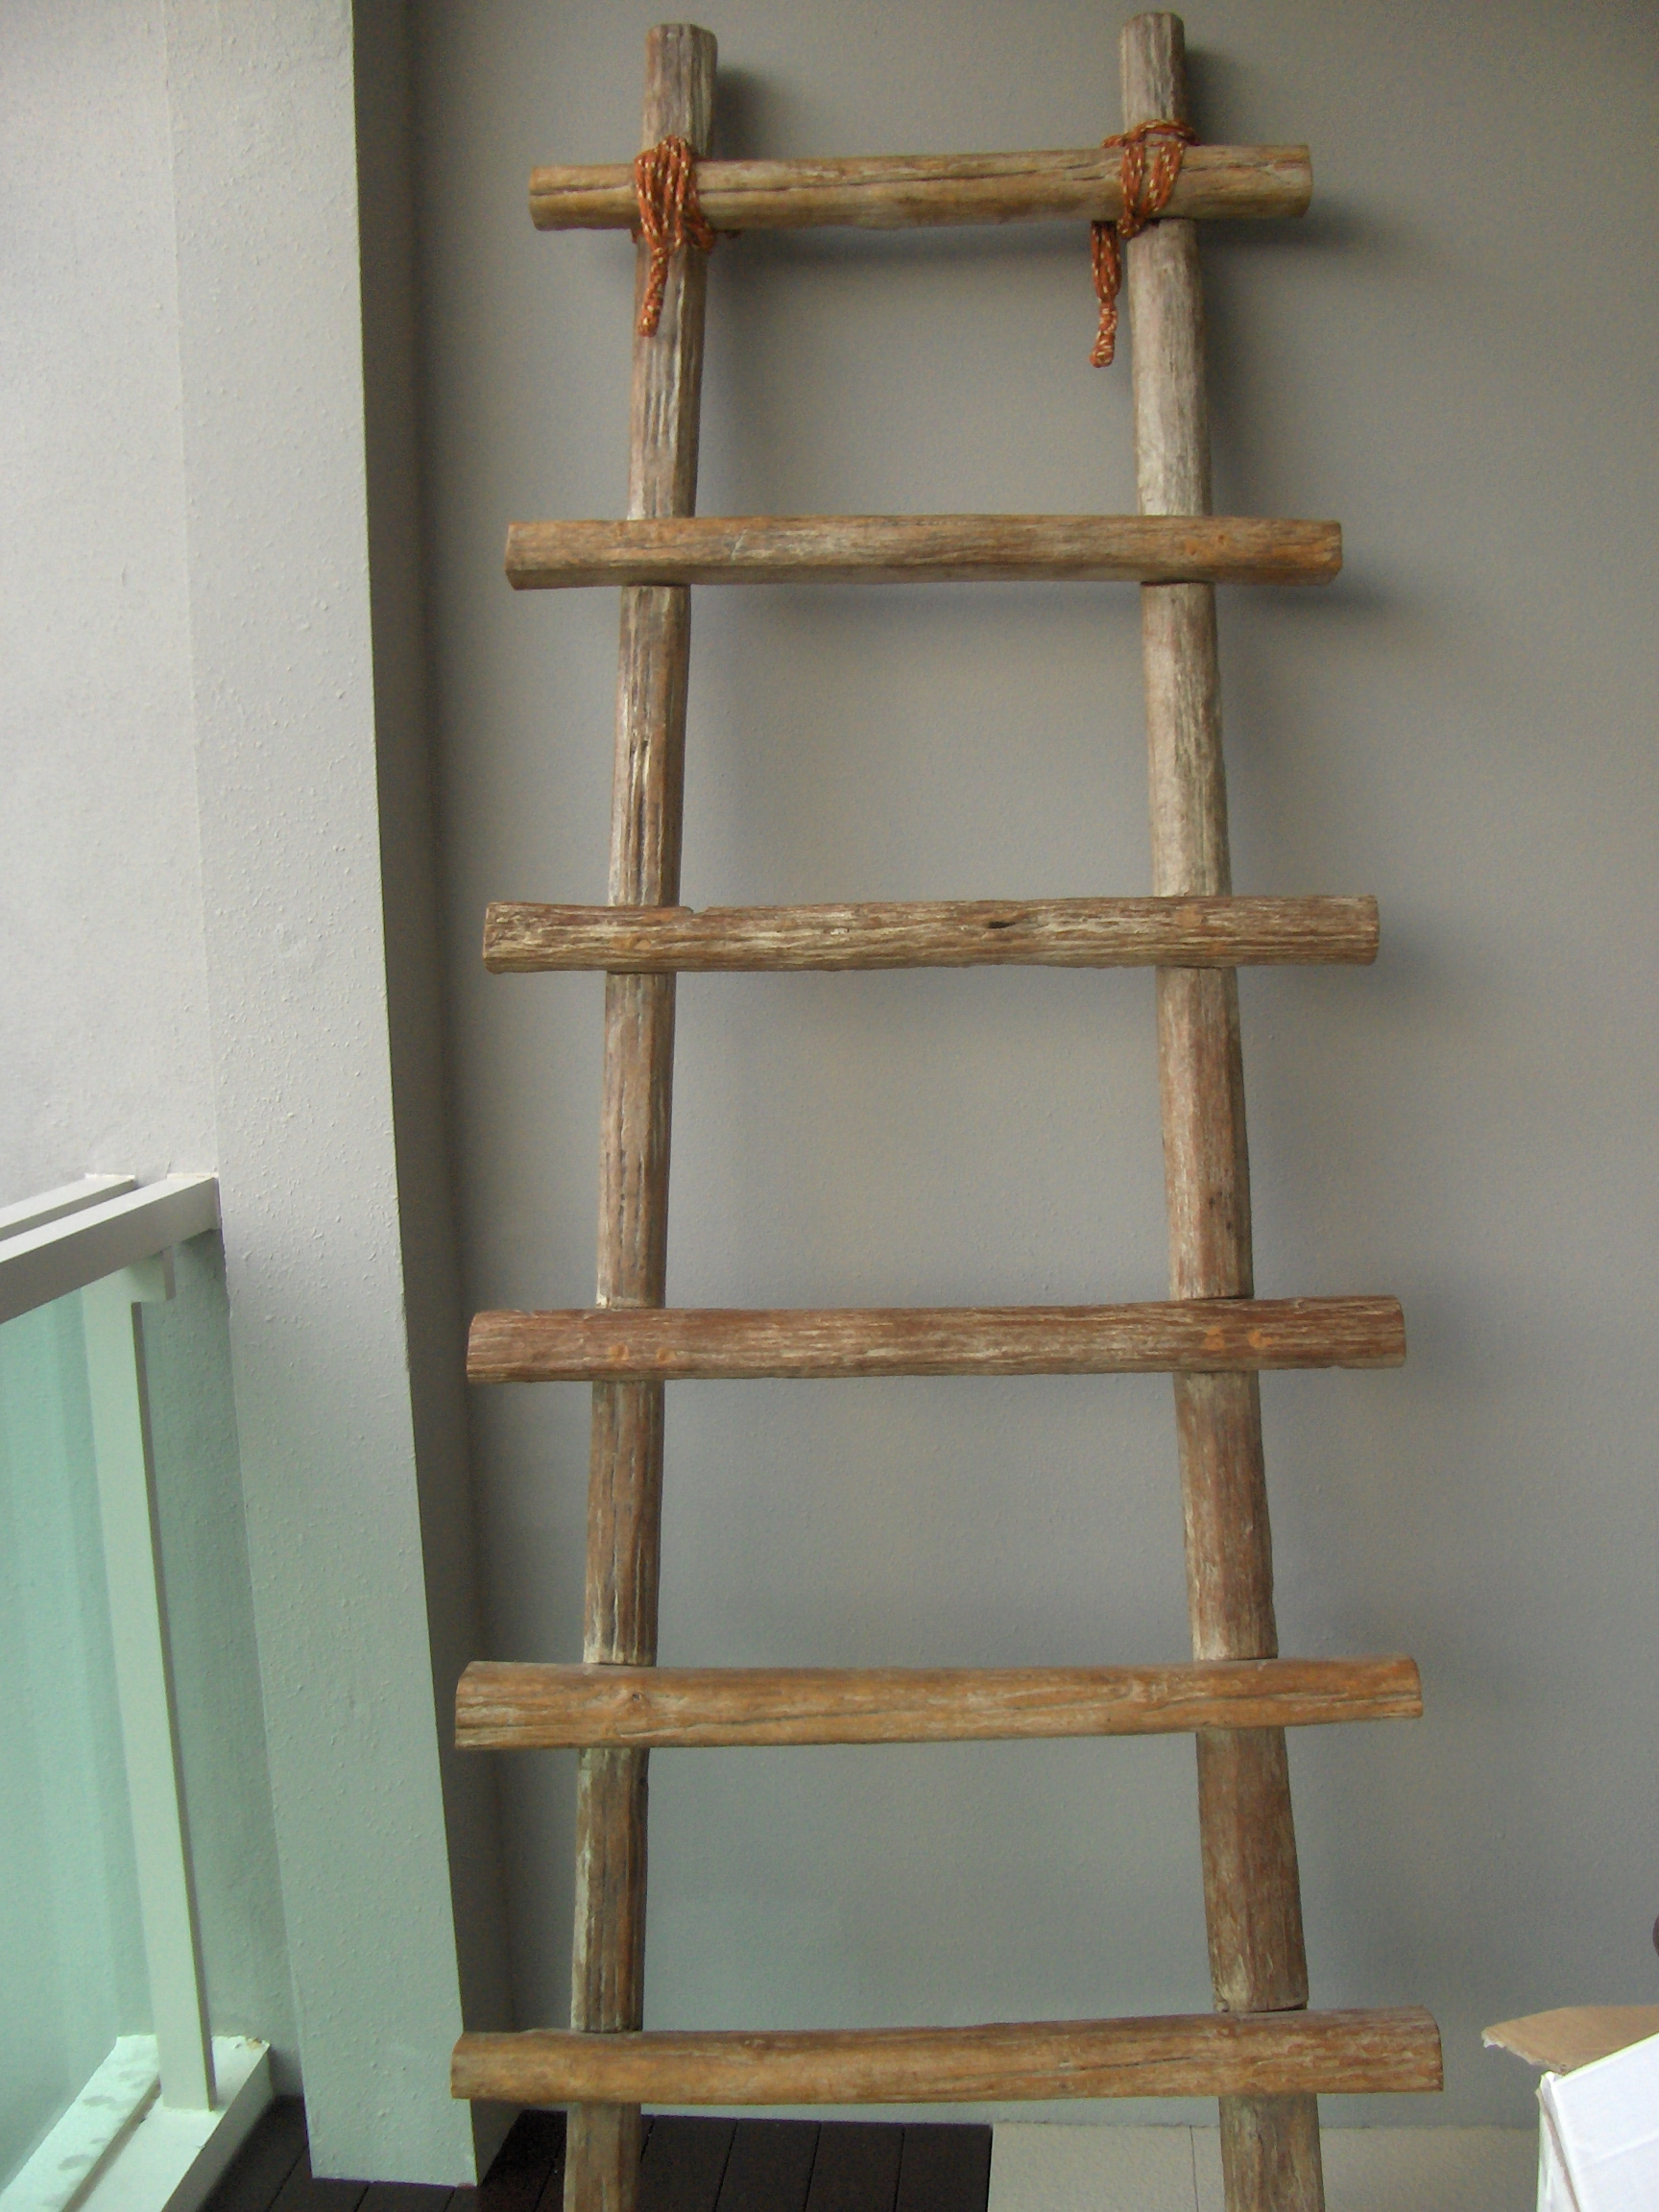 FOR SALE: GALLERY LADDER